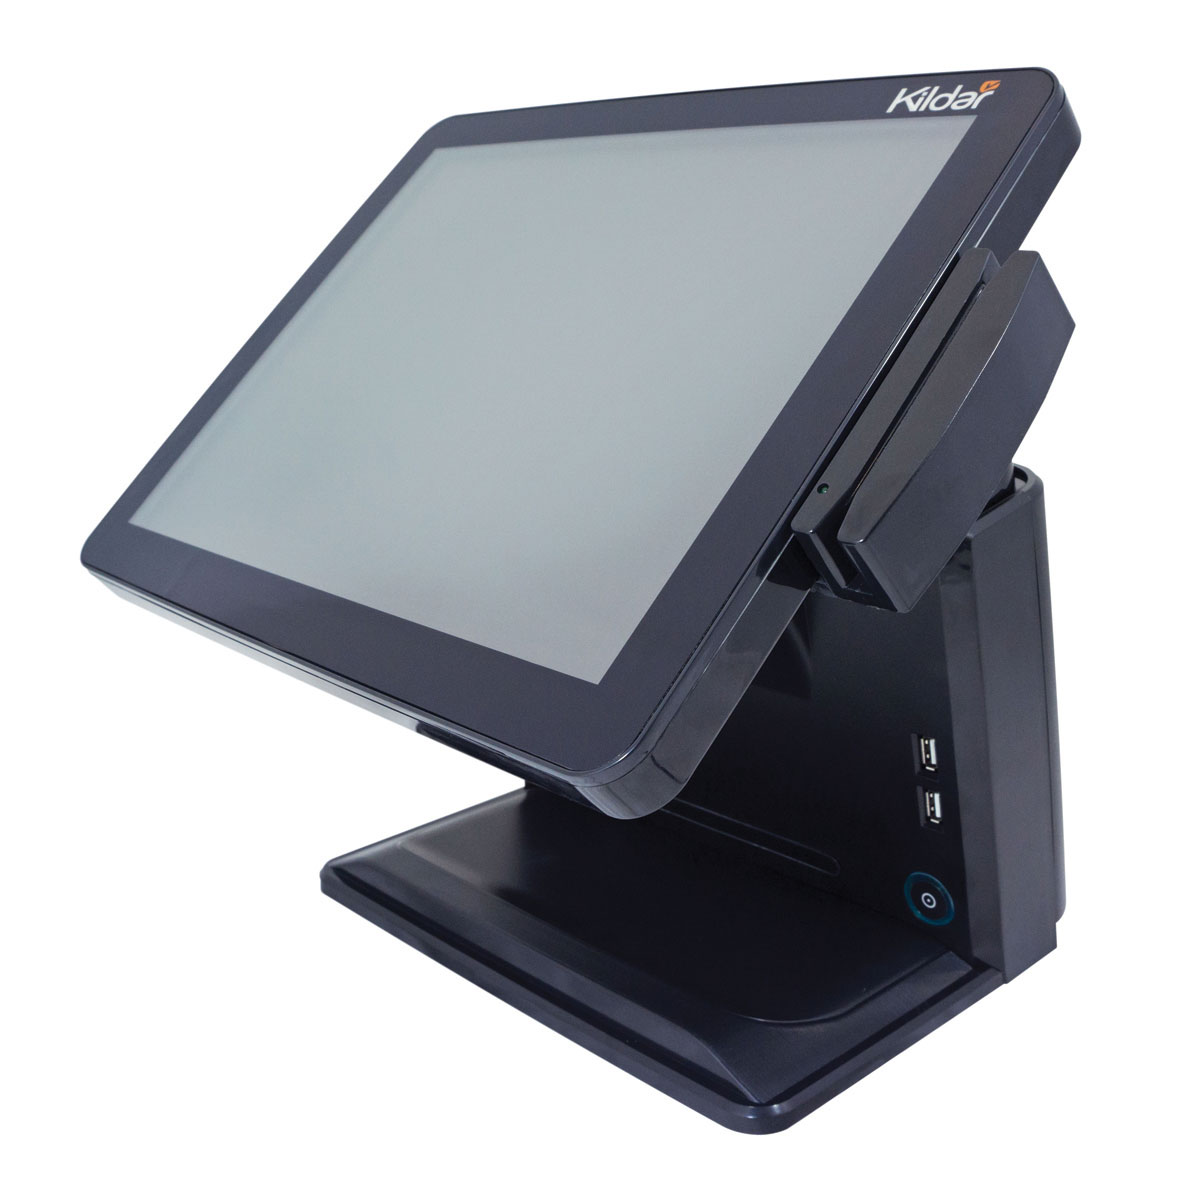 KILDAR - POS Touch Screen Terminals - DataTouch T1573 - Left Side